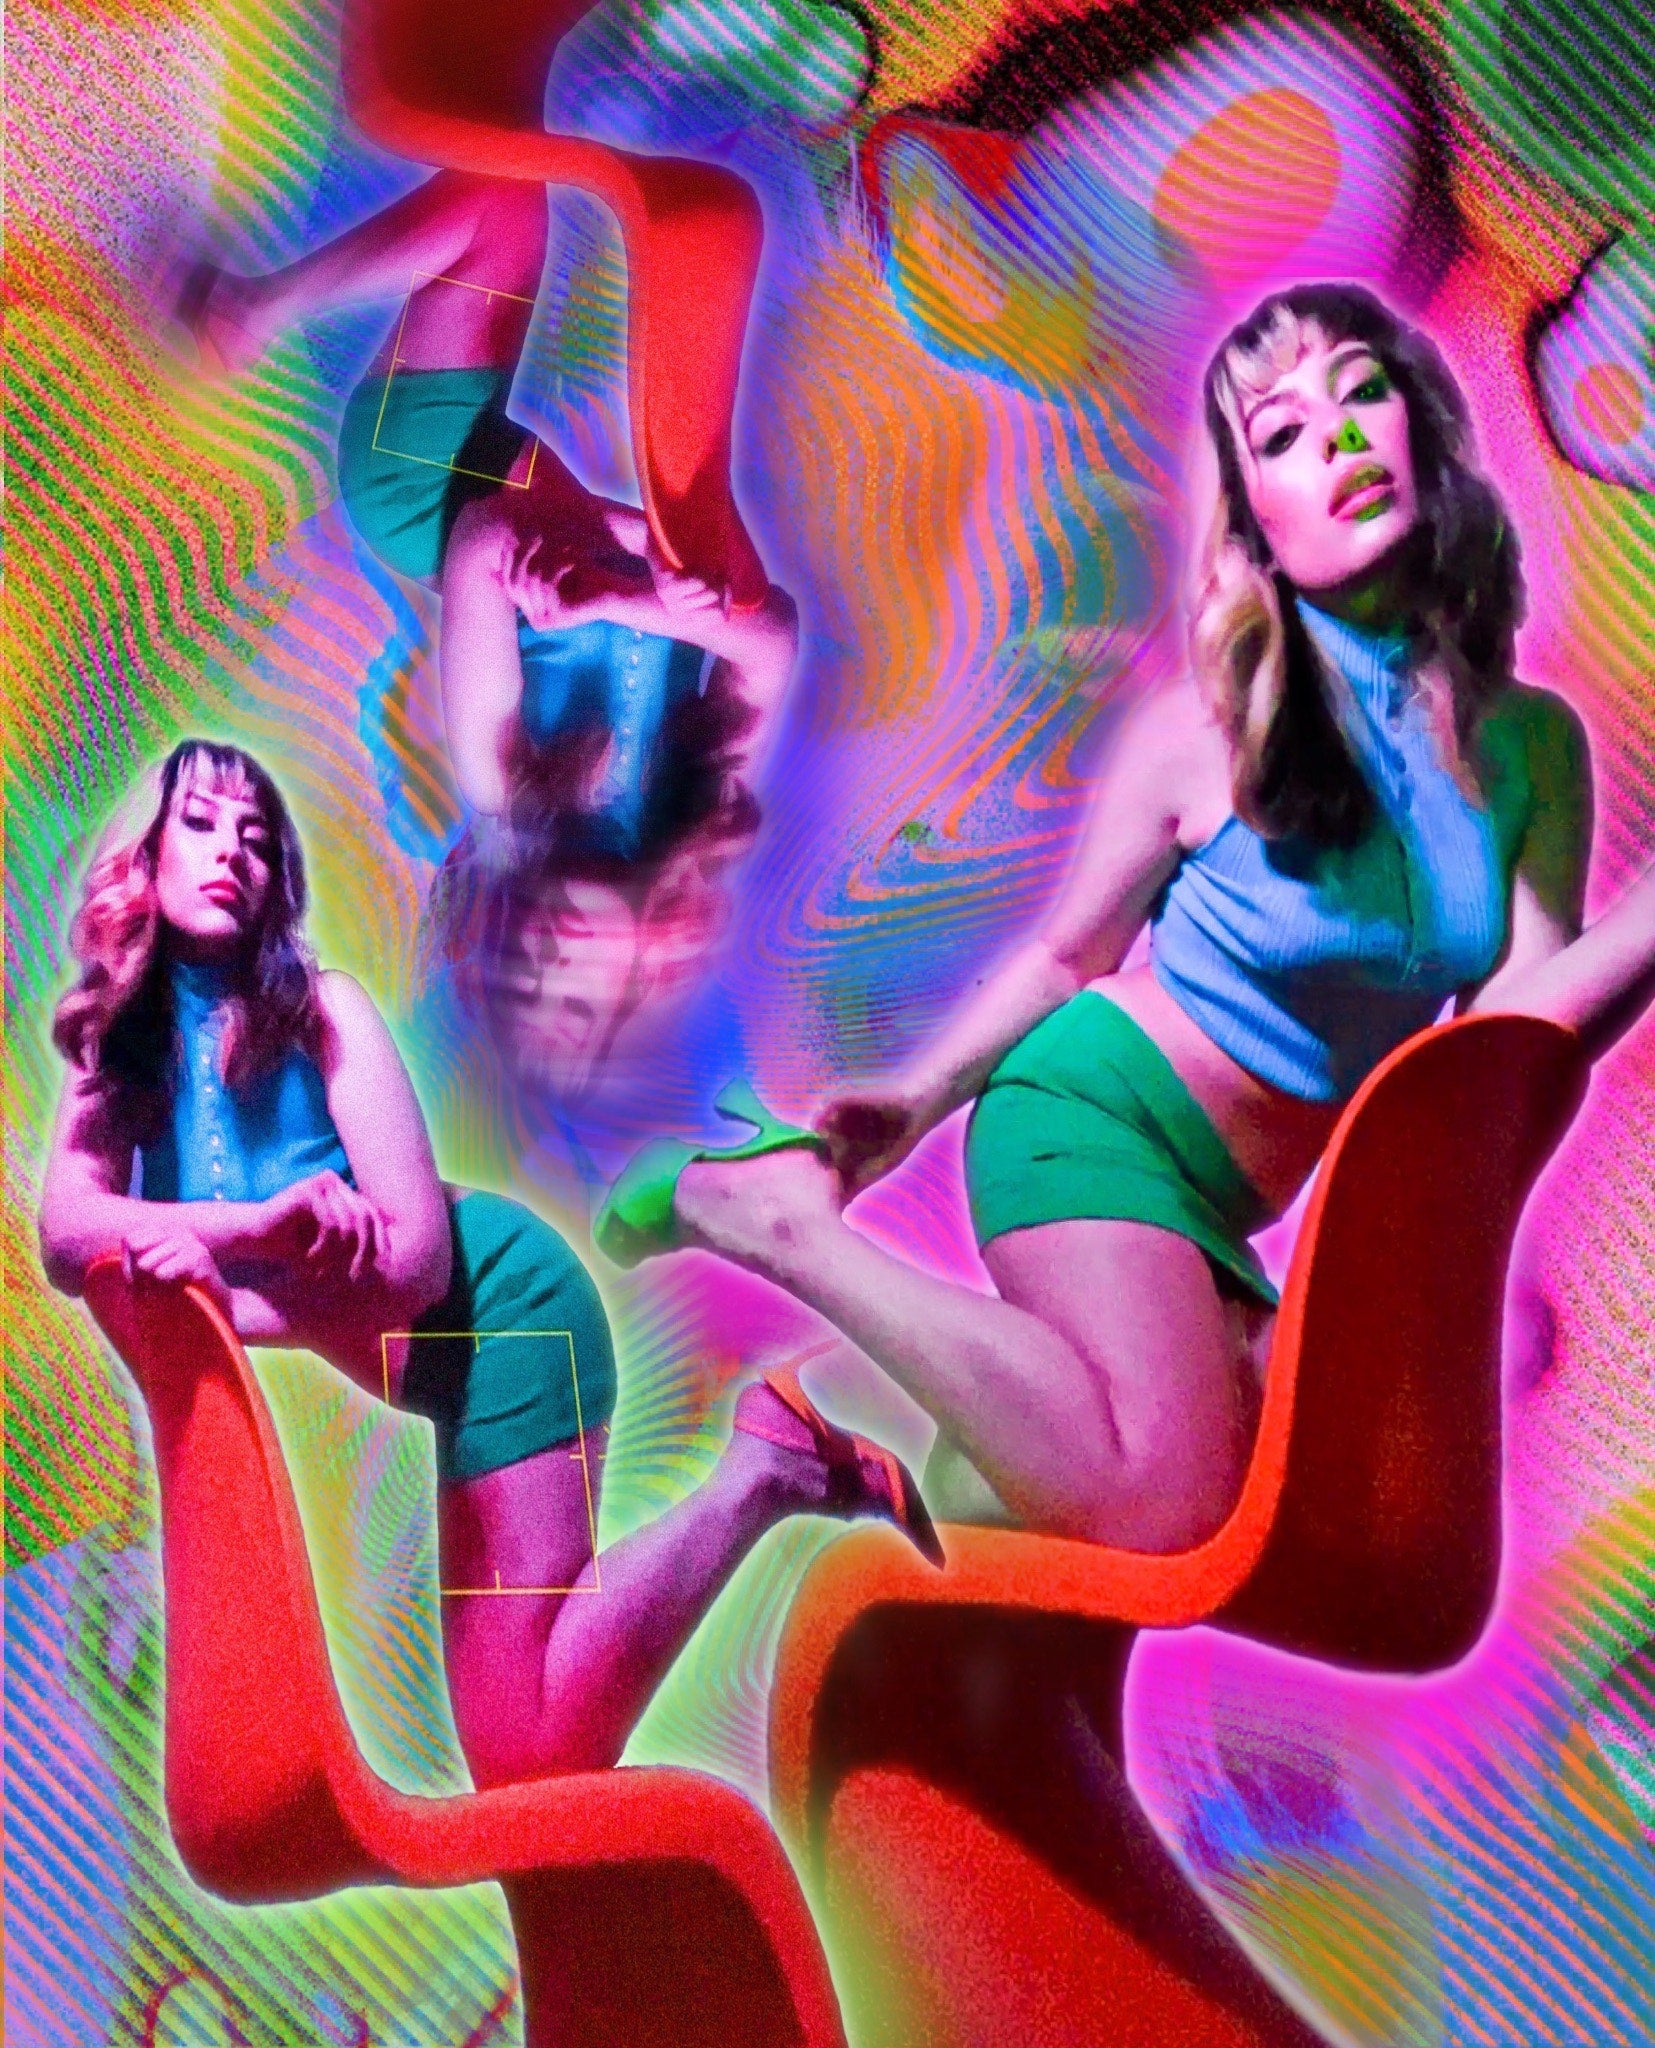 Montage of montreal makeup artist in pop hues on a red wavy chair